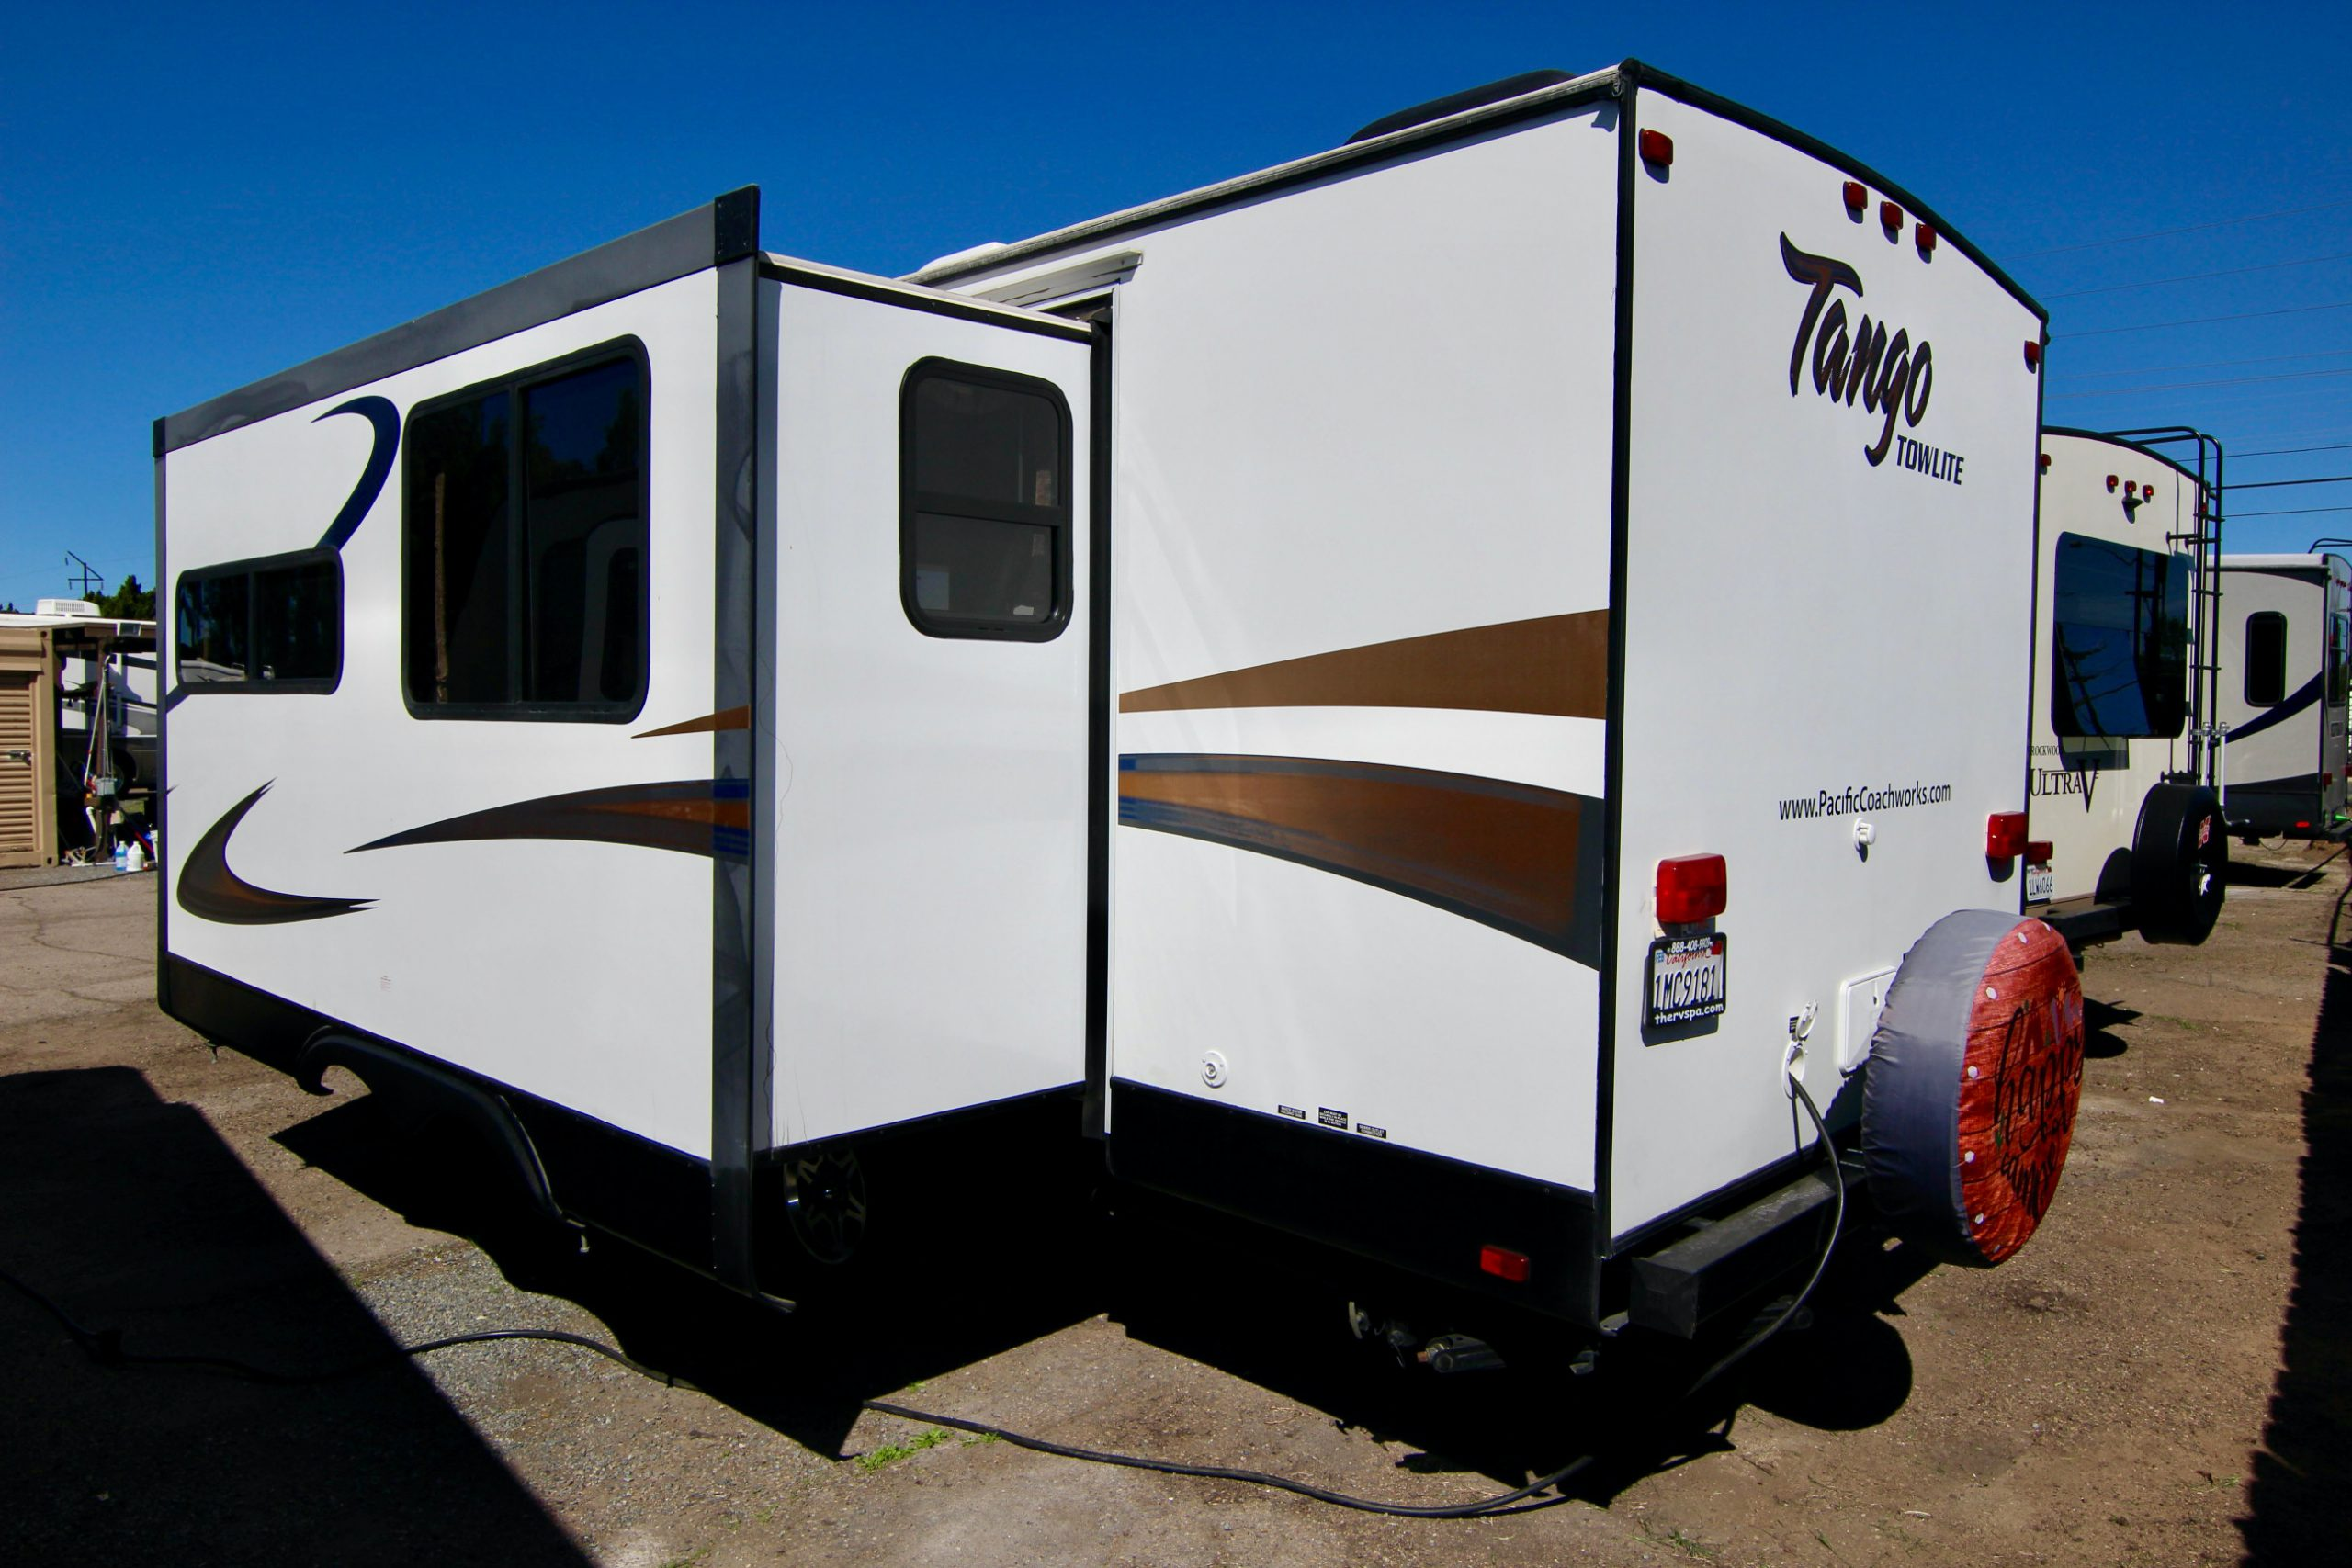 2014 Tango 26TBSS Bunk Bed Travel Trailer, Slide-Out 🥳 full